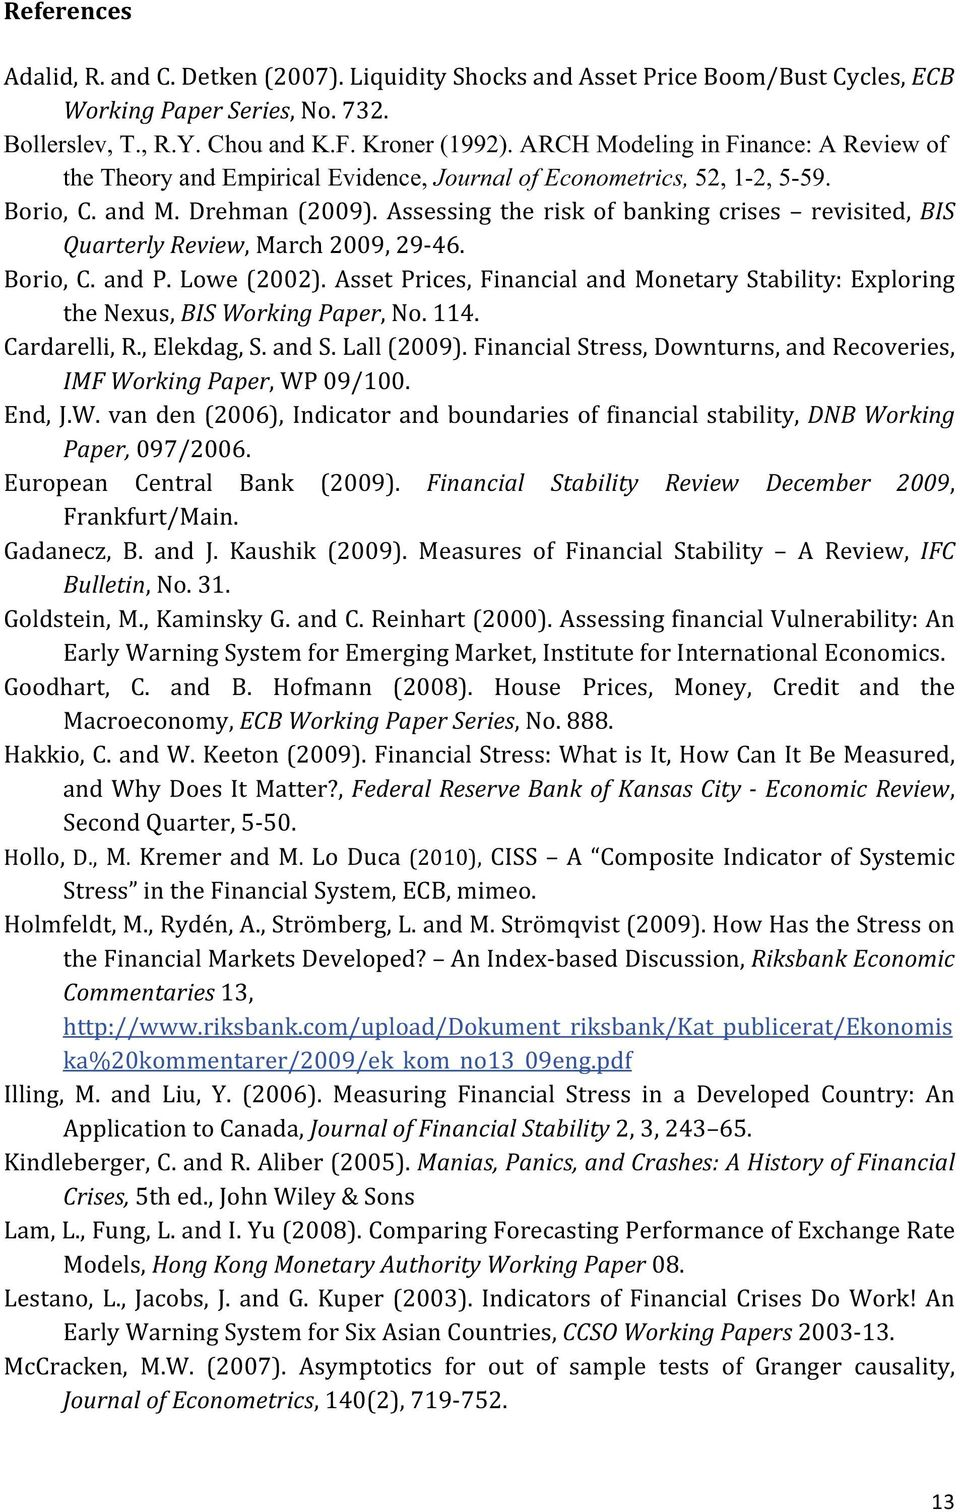 ARCH Modeling infinance: A Review of